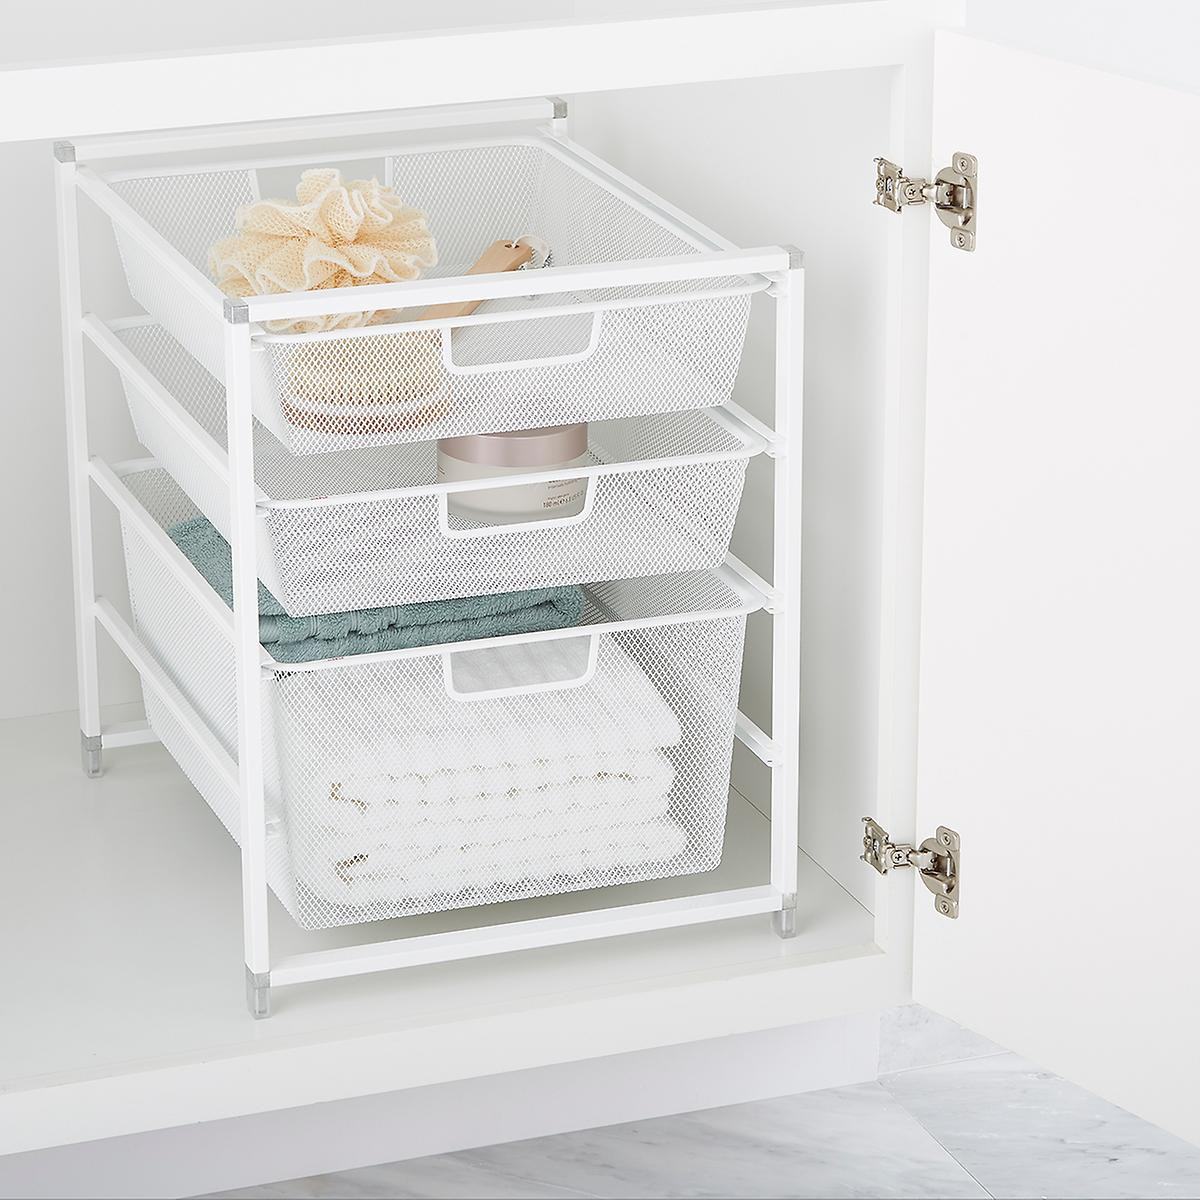 17. Mesh Drawer For Under Kitchen Sink Storage